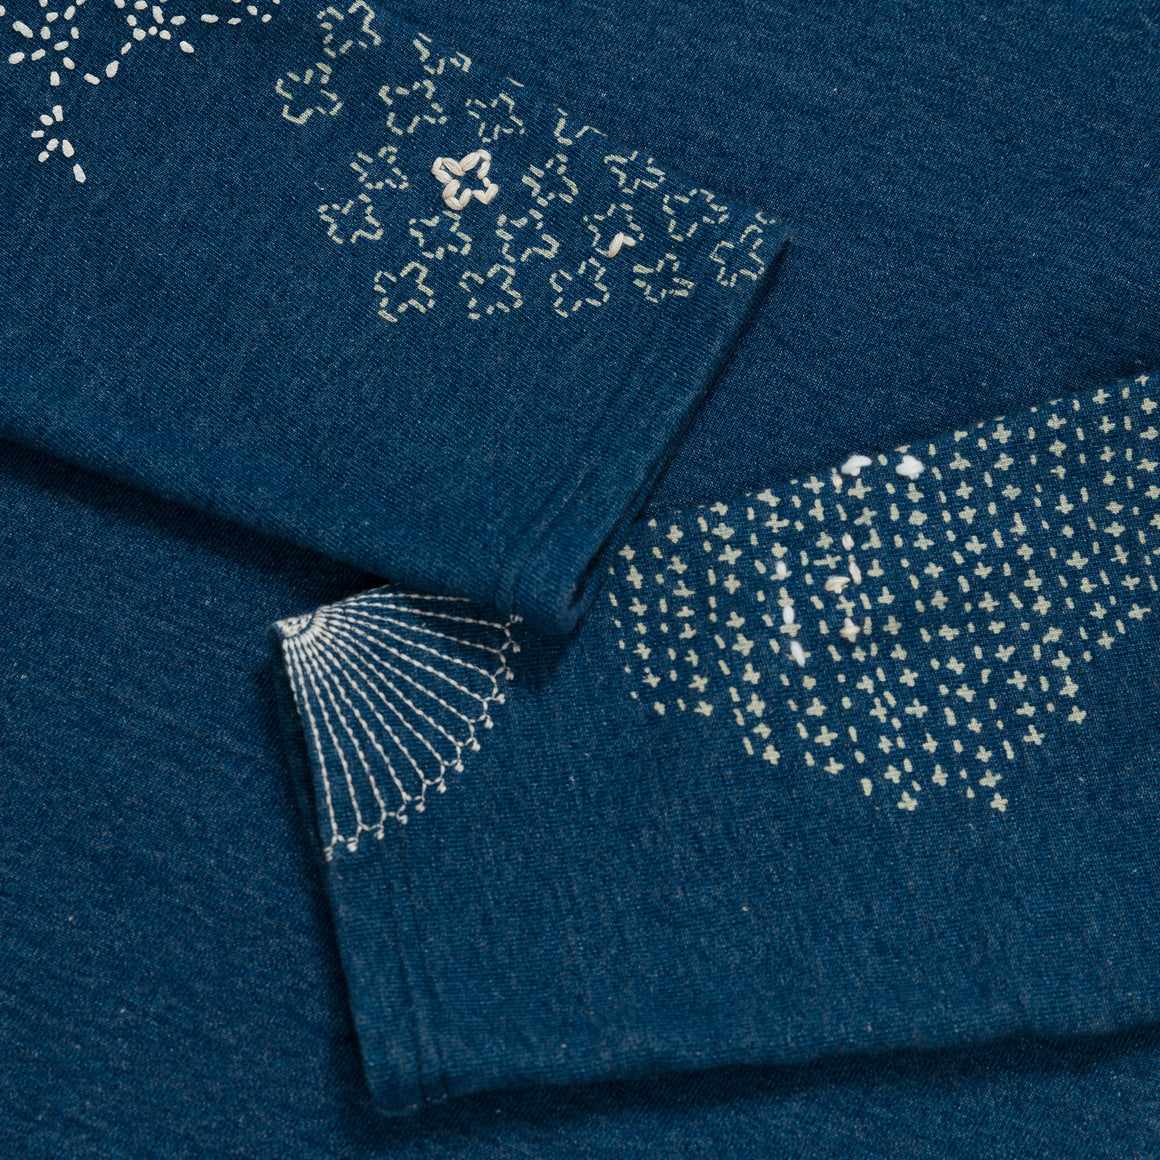 IDG Fleecy Knit Sashiko Patchwork L/S Tee - Indigo - Up There